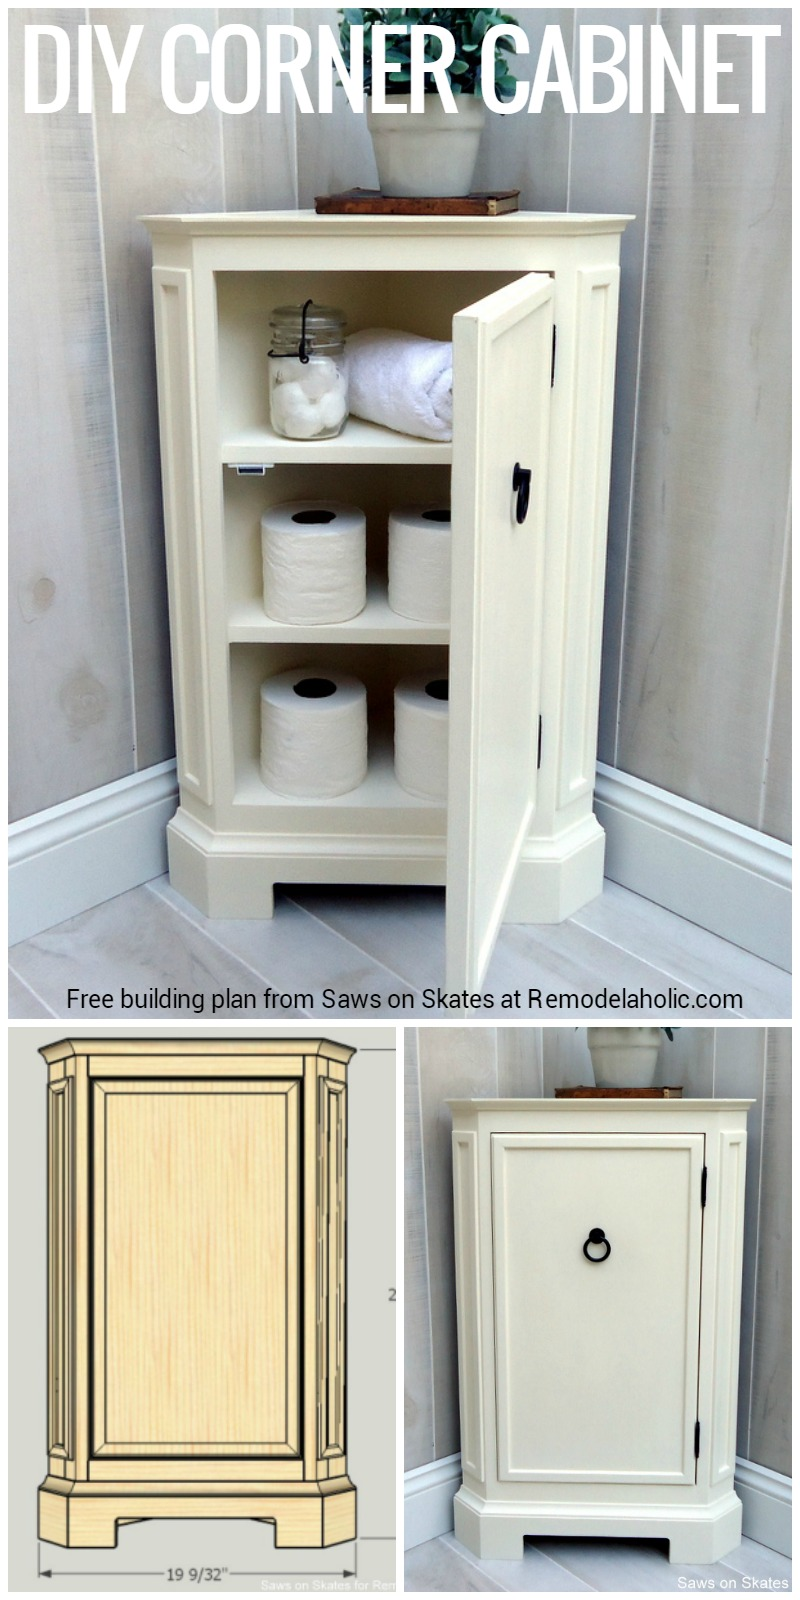 Beau Build This Space Smart Corner Cabinet With The Free Building Plans From  Saws On Skates